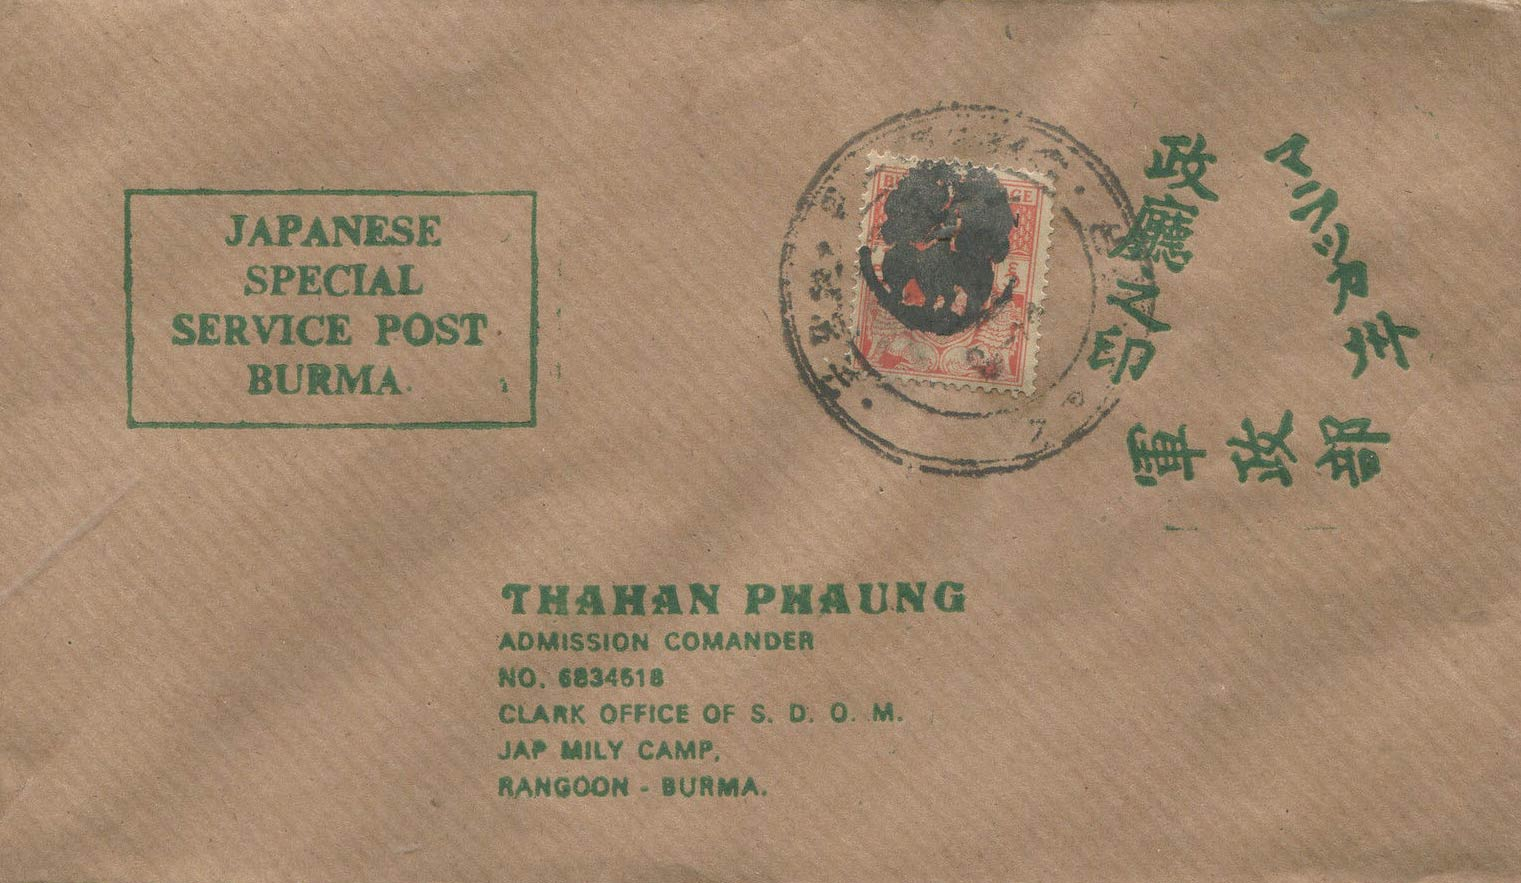 Burma_Japanese-Special-Service-Post_Cover_Forgery5